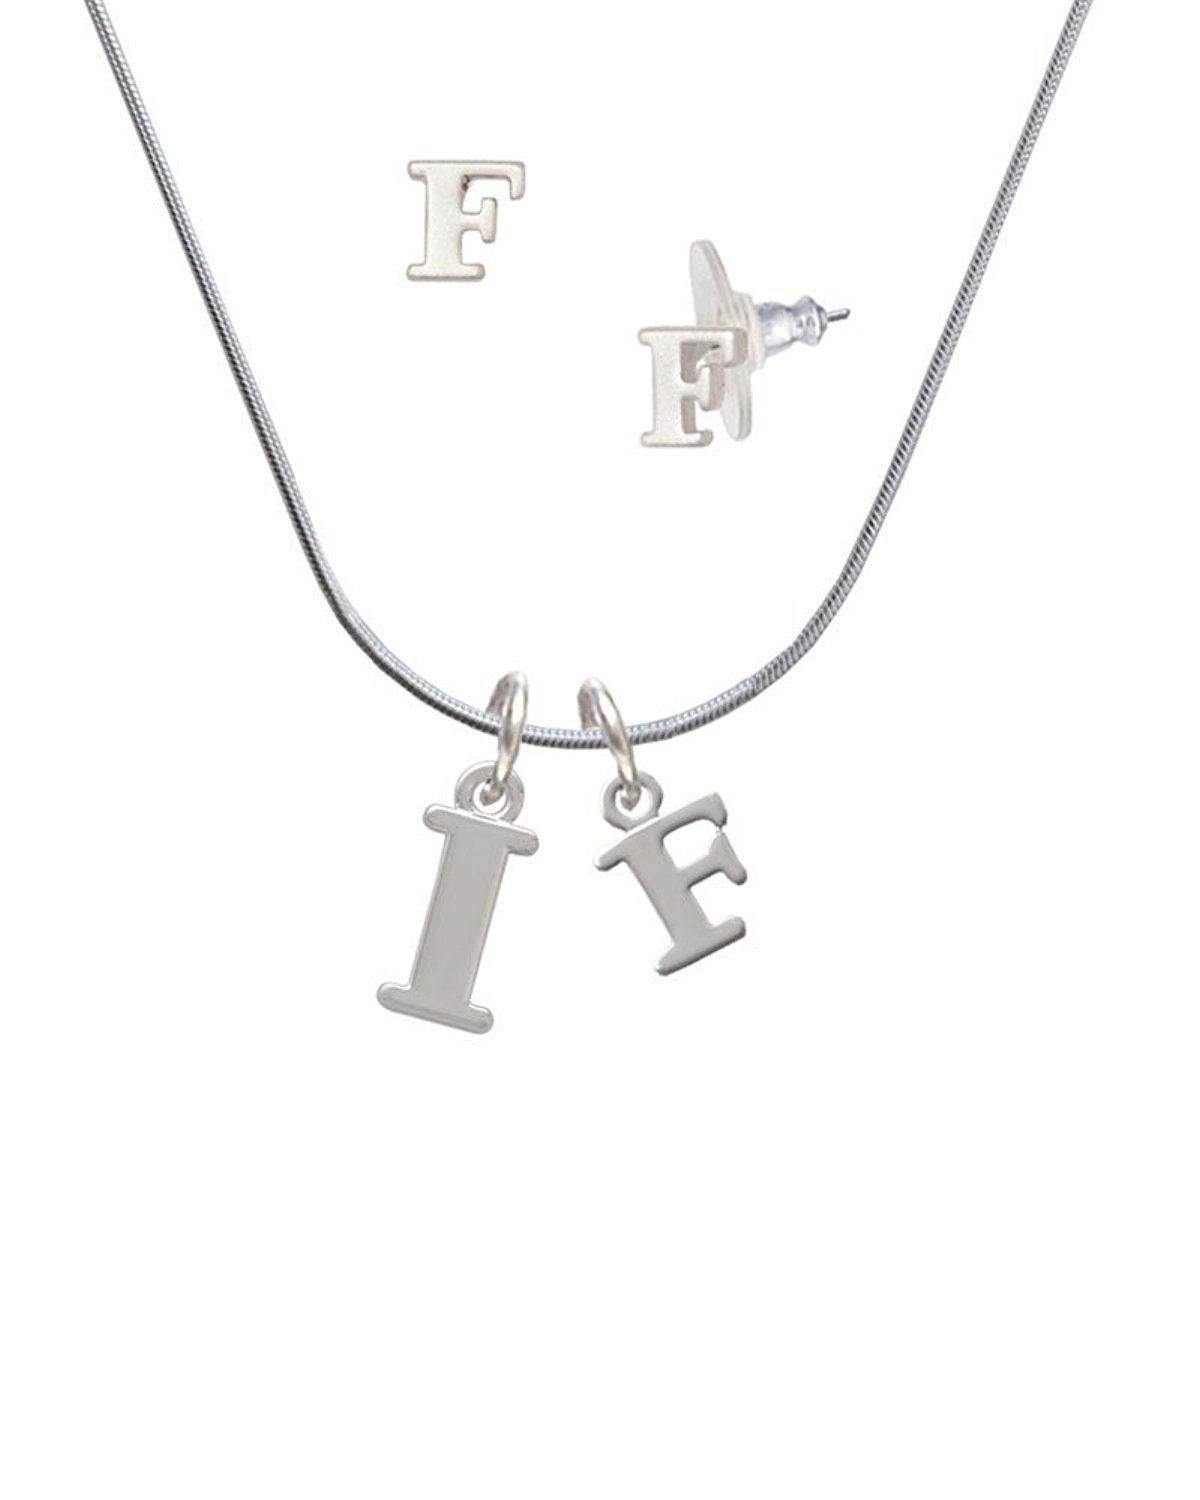 Silvertone Large Initial I F Charm Necklace And Stud Earrings Jewelry Set